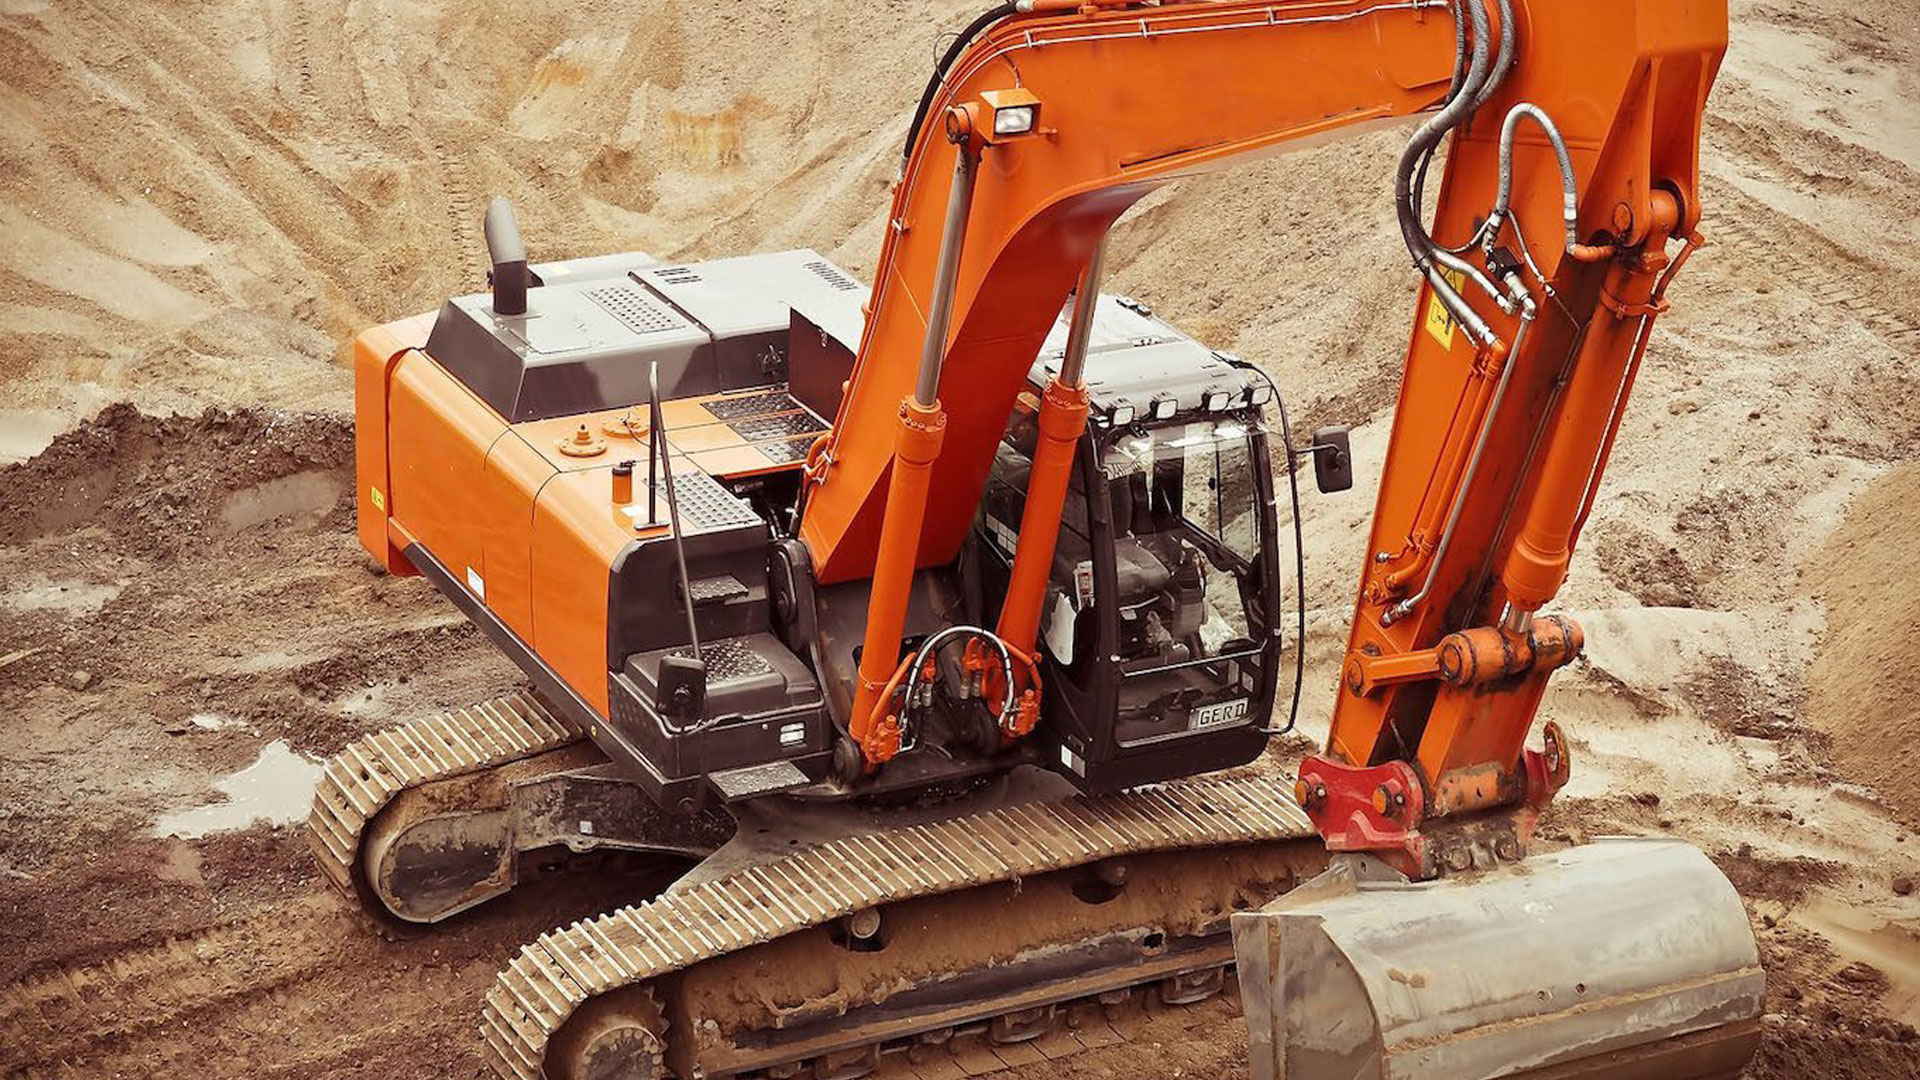 RIIMPO320F Conduct civil construction excavator operations